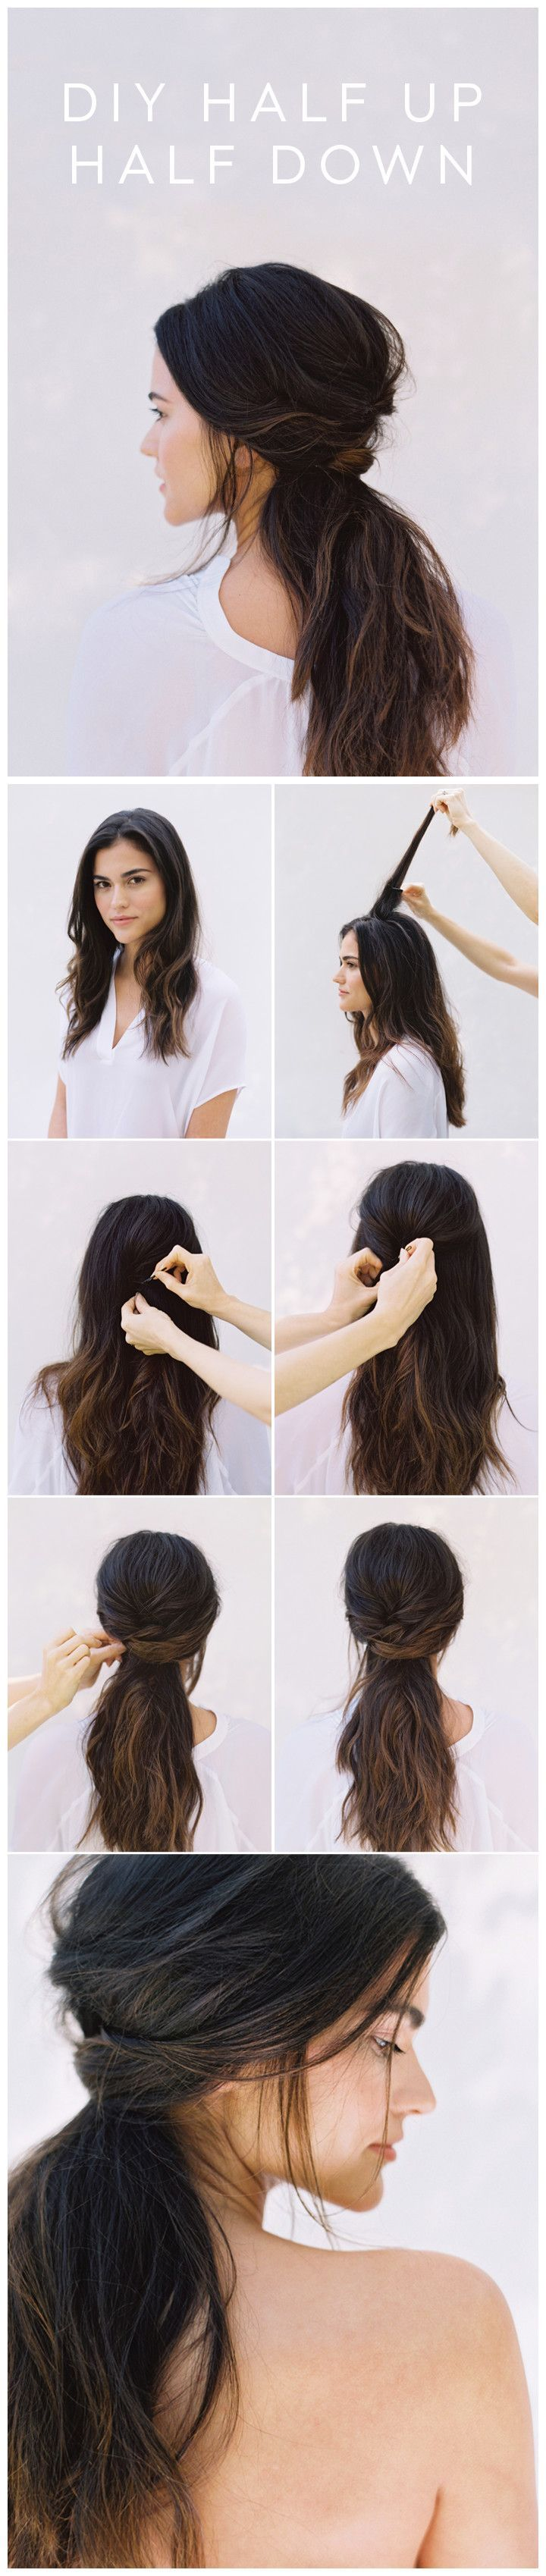 DIY HALF UP HALF DOWN HAIR